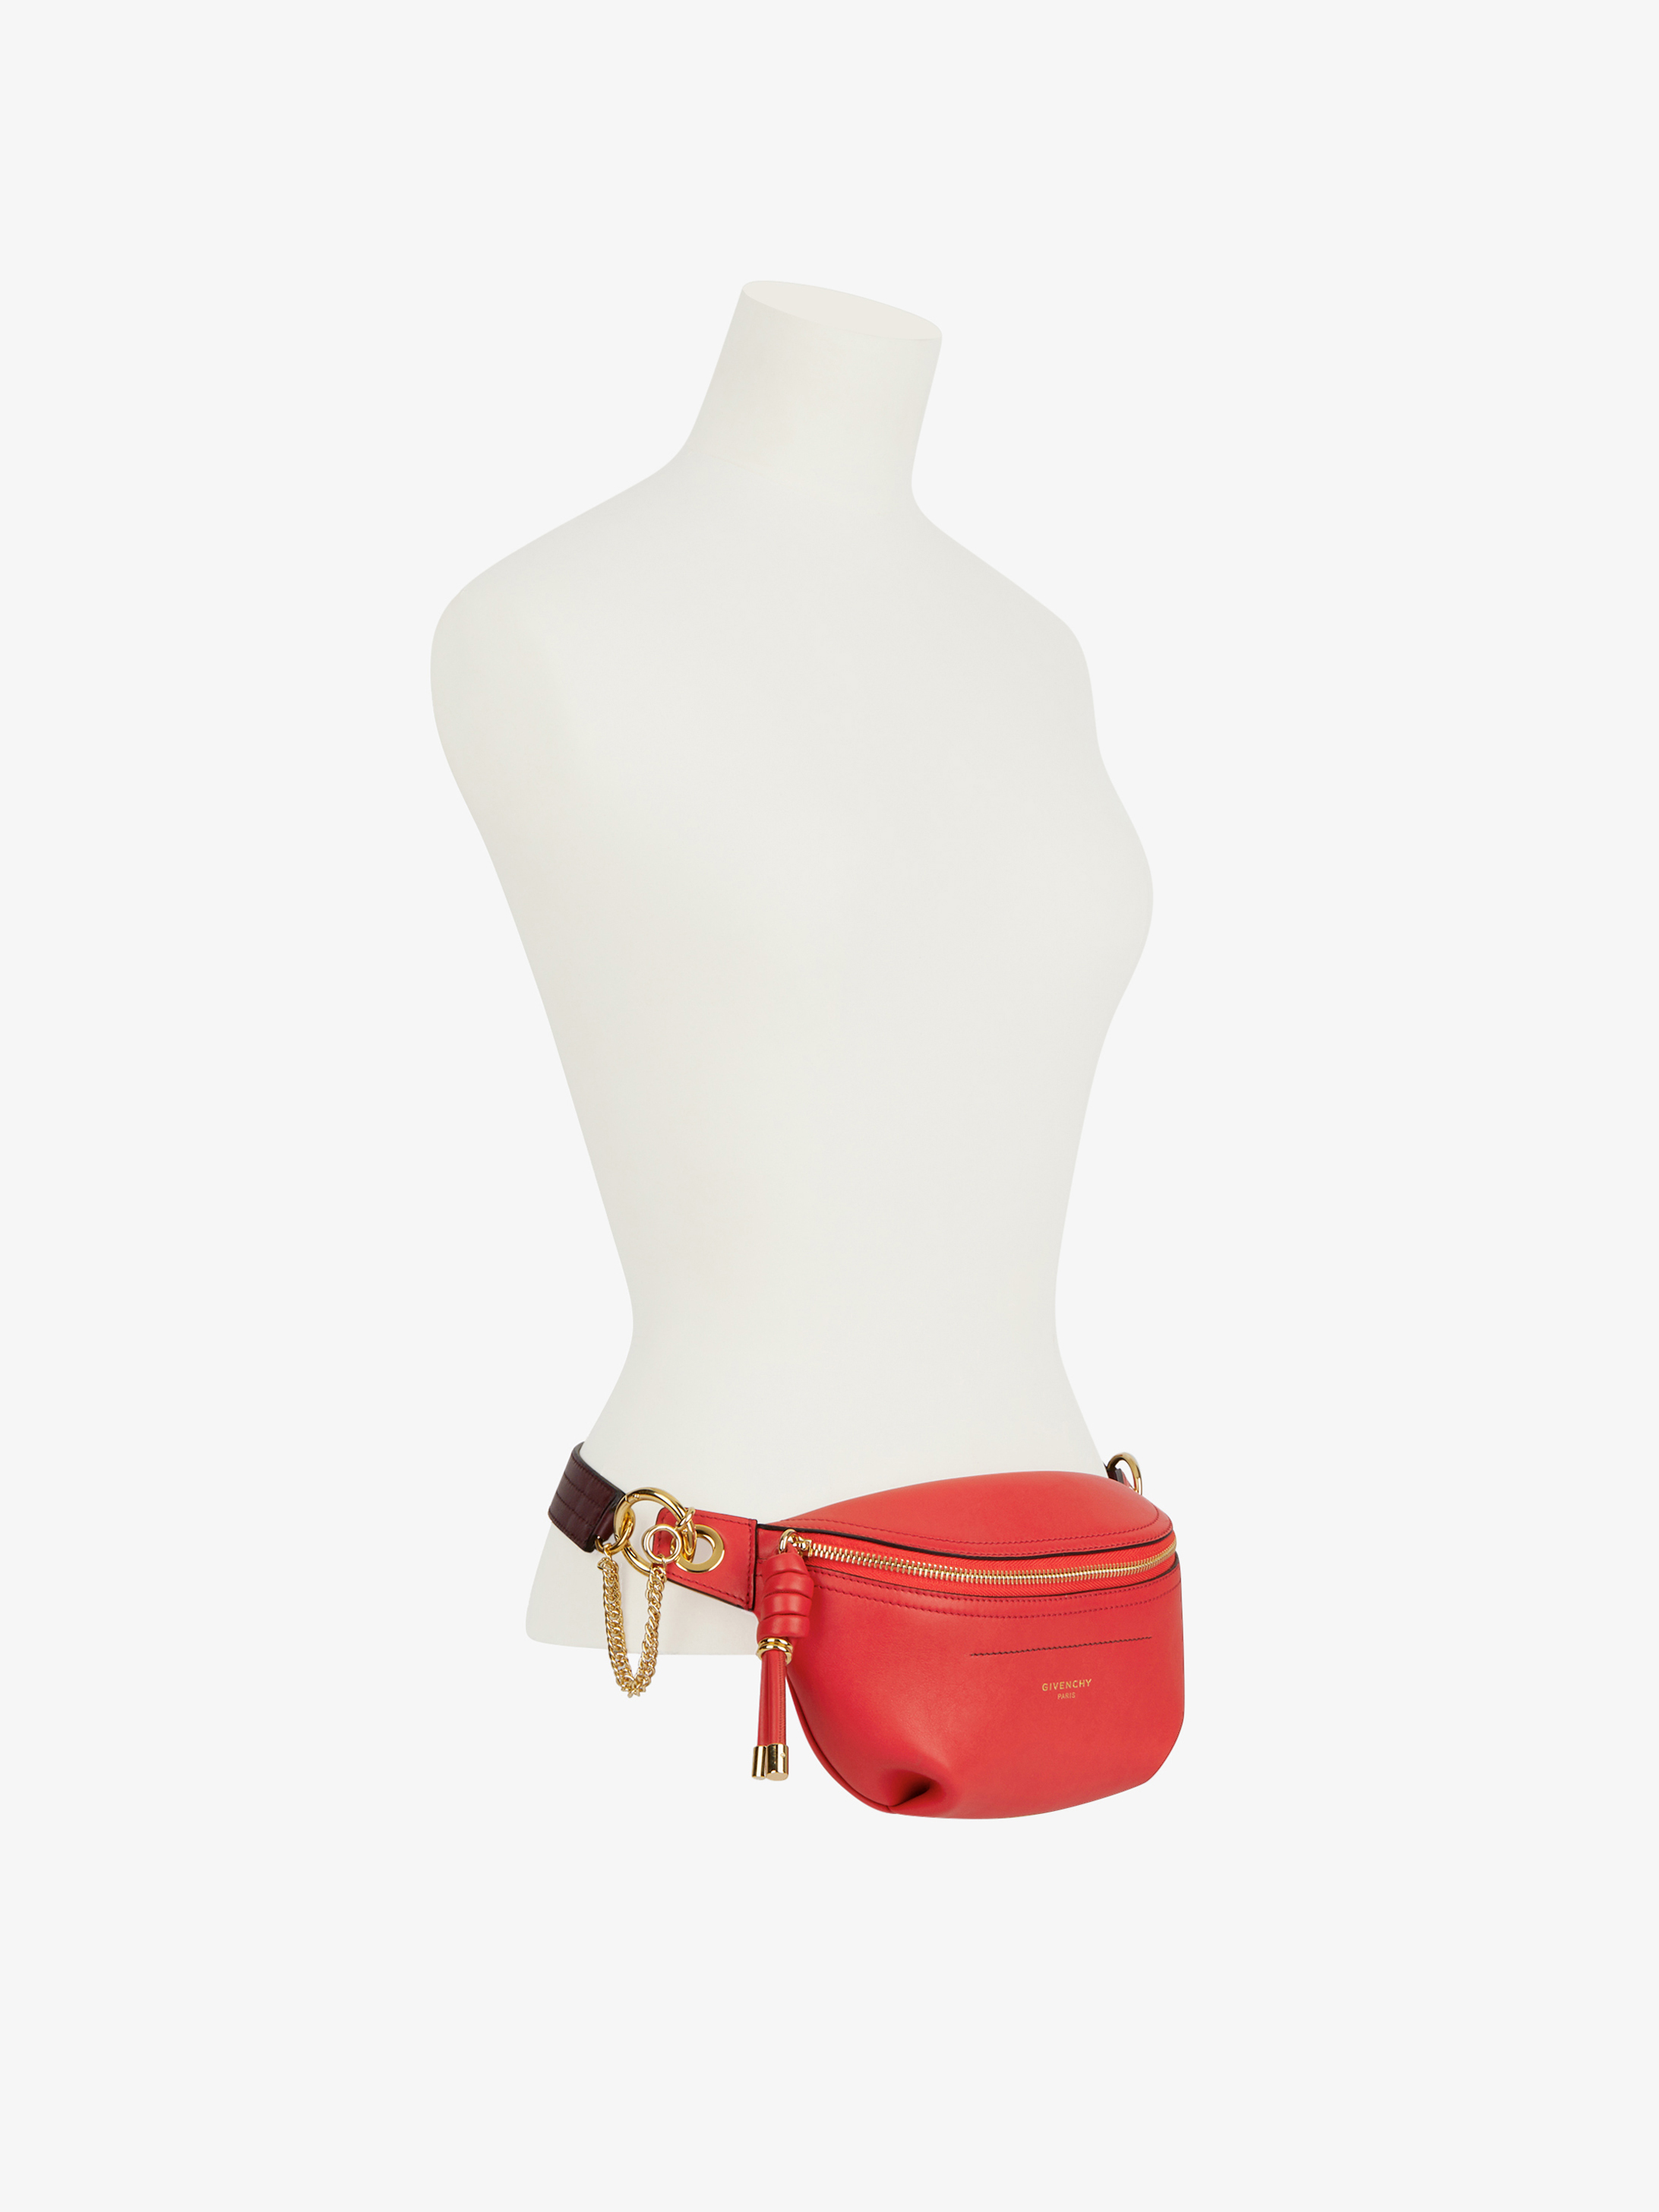 Small Whip bum bag with contrasting details